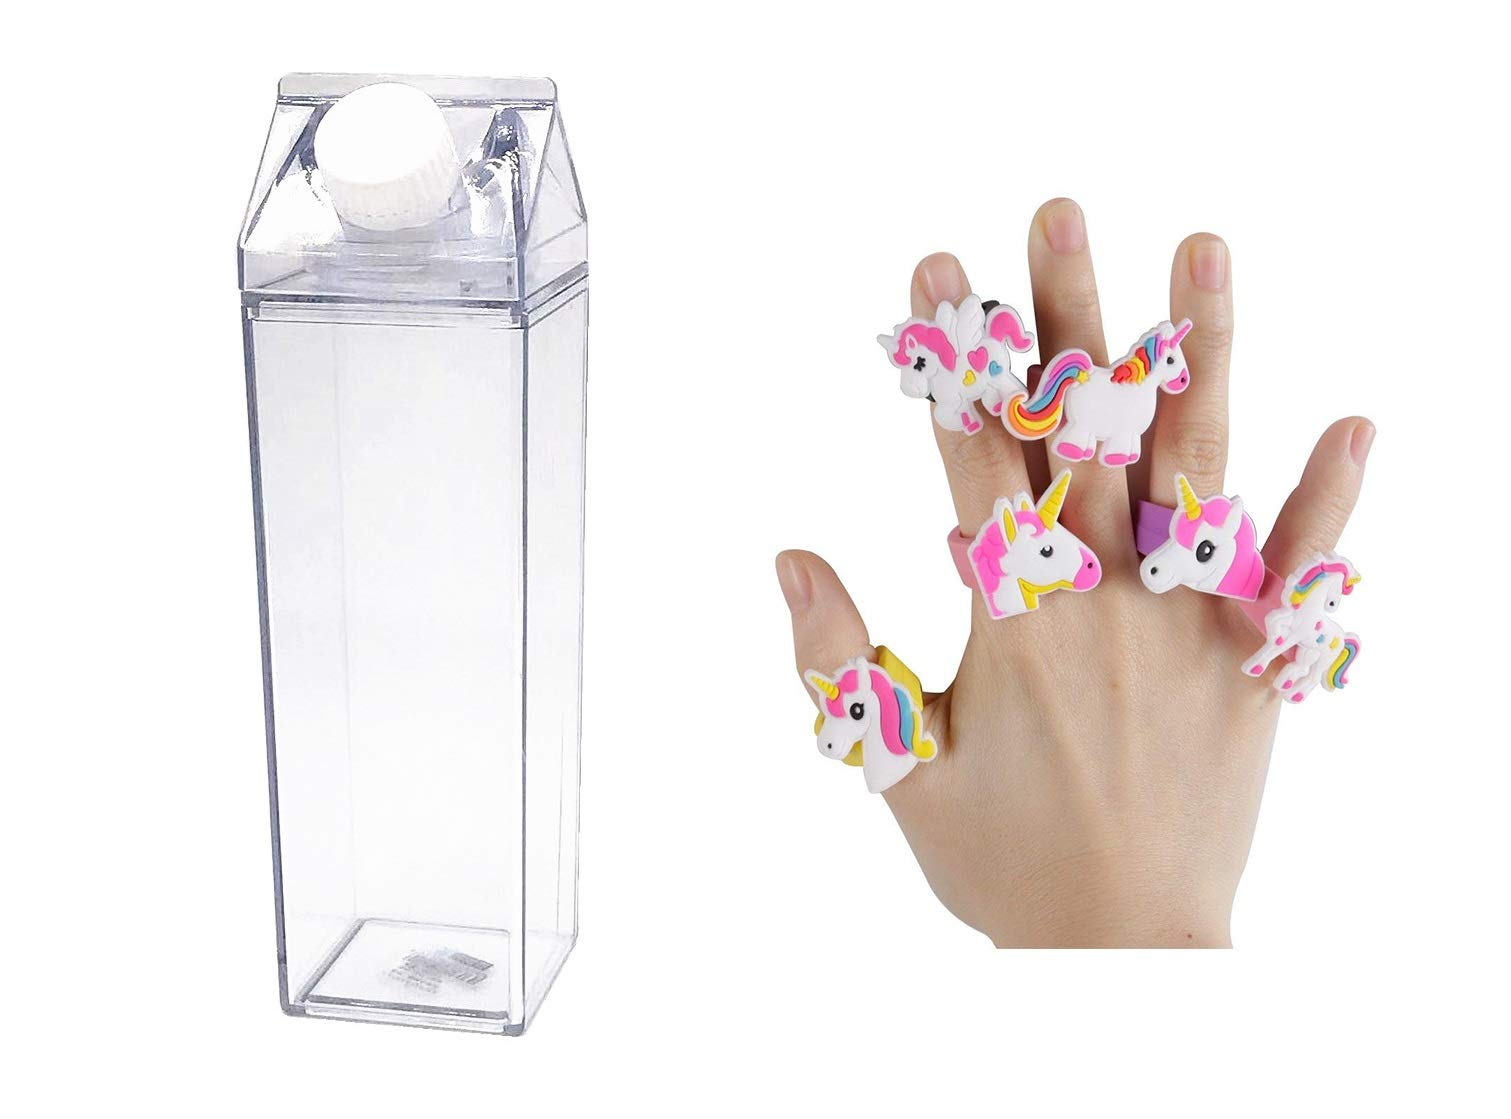 Unicorn Water Bottle - Zero Waste Water Bottle - Milk Box Plastic - Milk Bottles - Juice Bottle - BPA Free Environment Friendly Material 500ml + 2 Cute Unicorn Rings (Style 6)